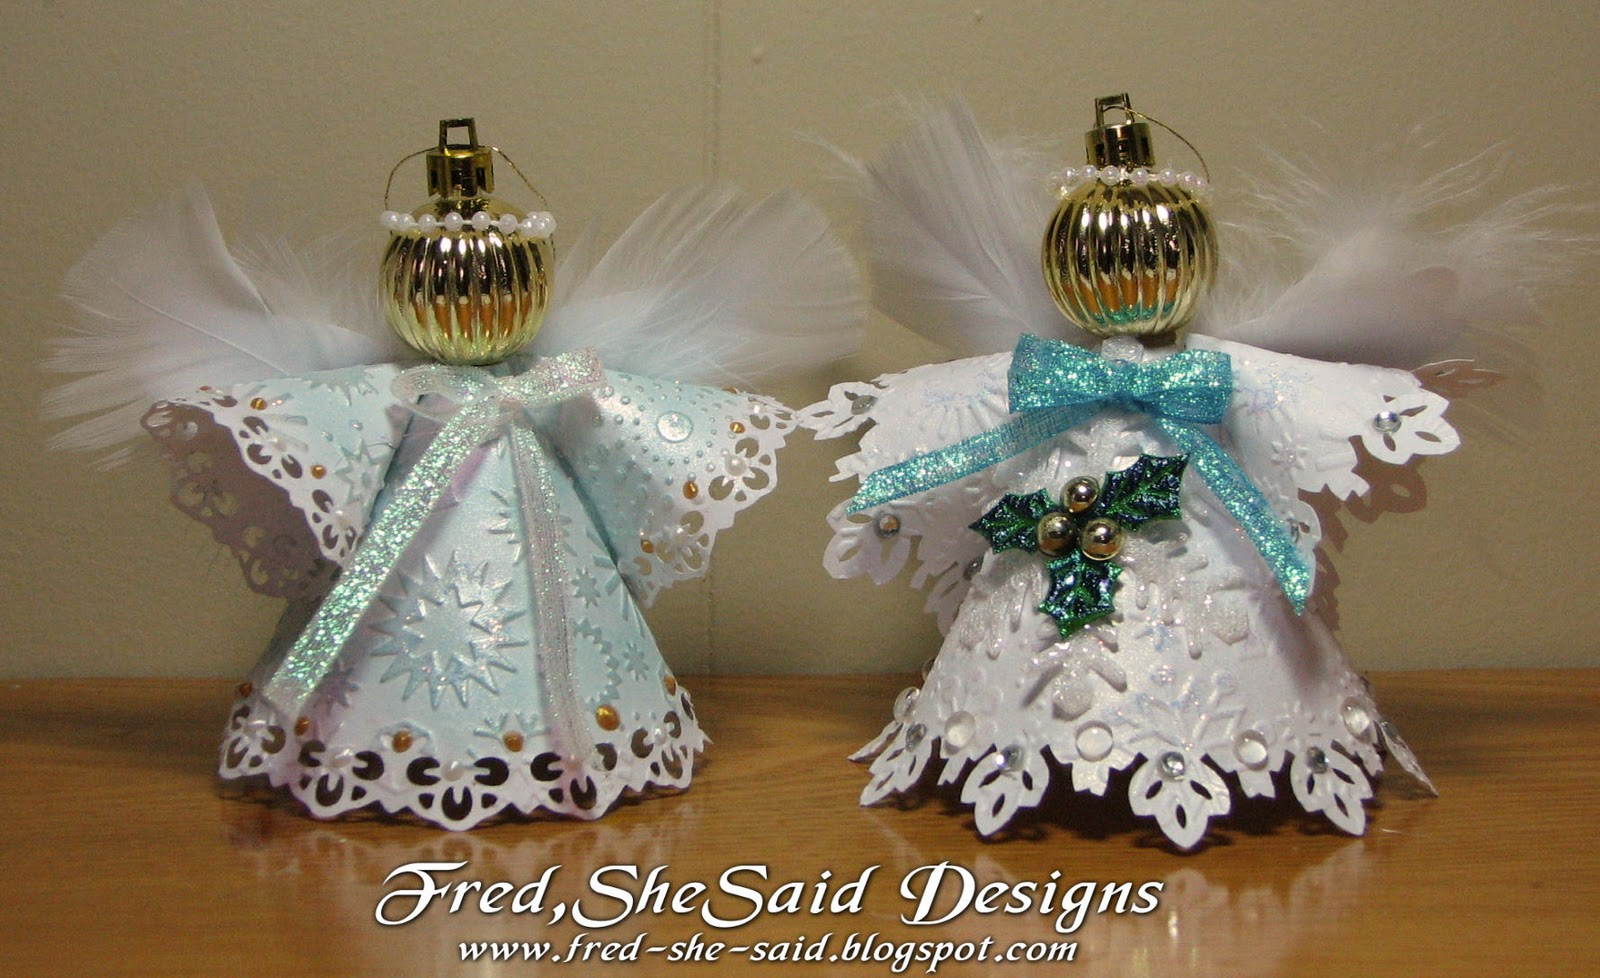 Fred she said digital design papercrafting goodness paper paper angels and svg freebies jeuxipadfo Images